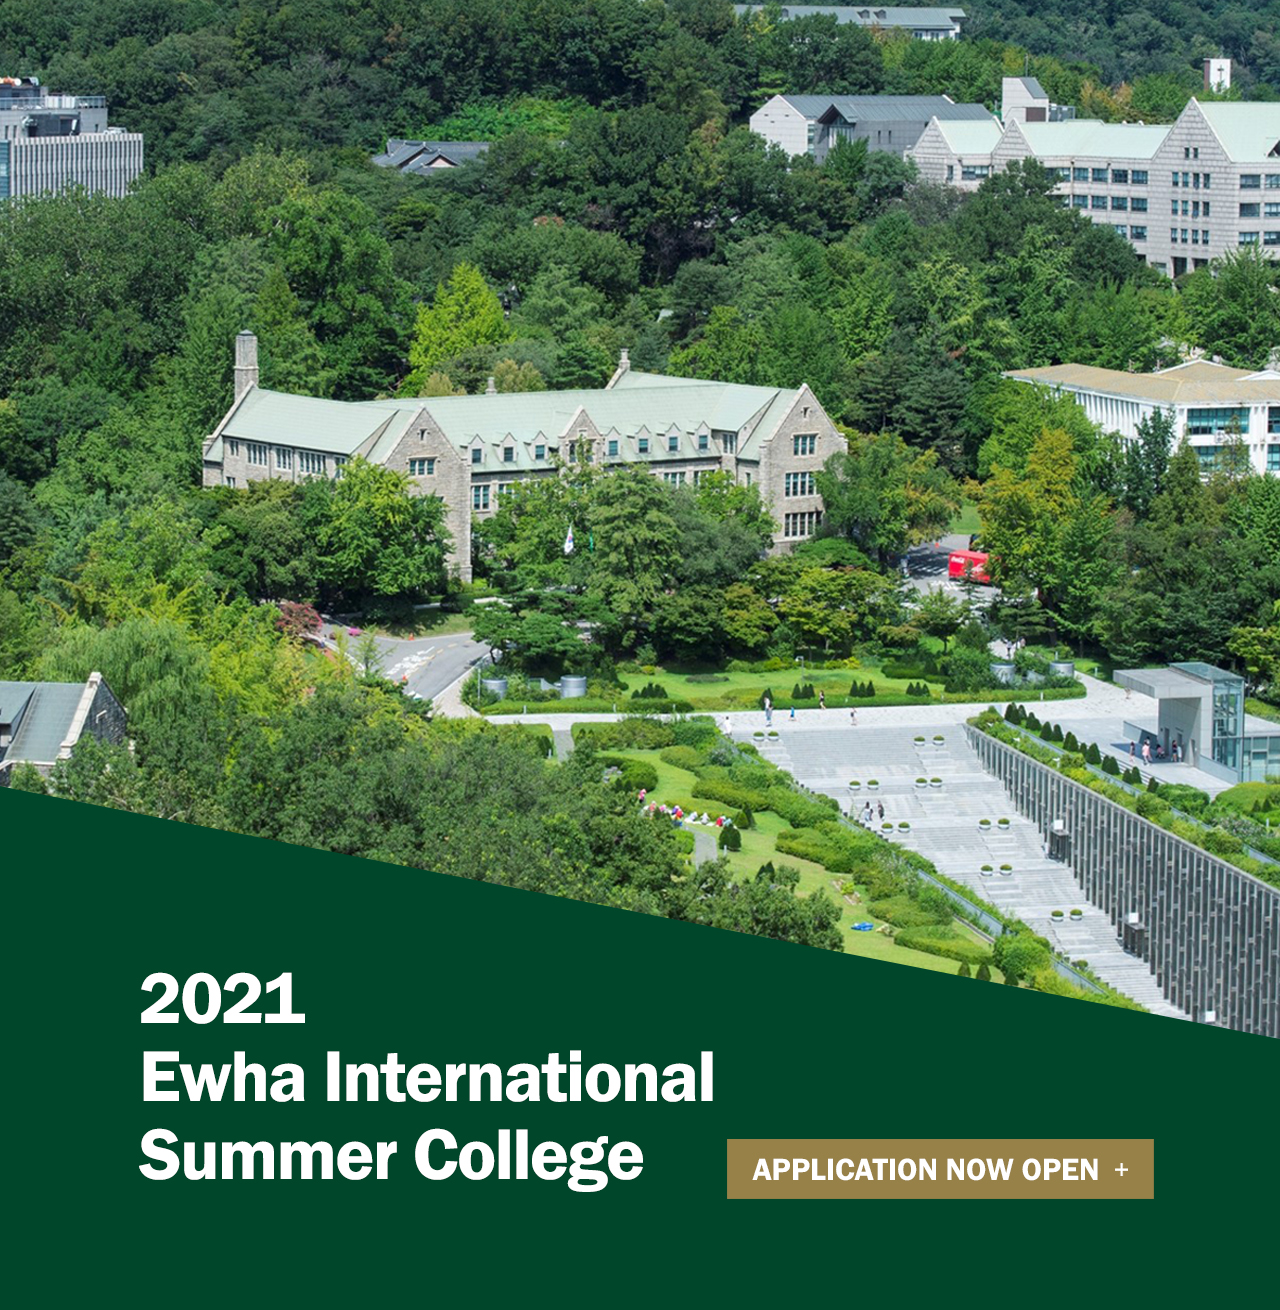 2021 Ewha International Summer College